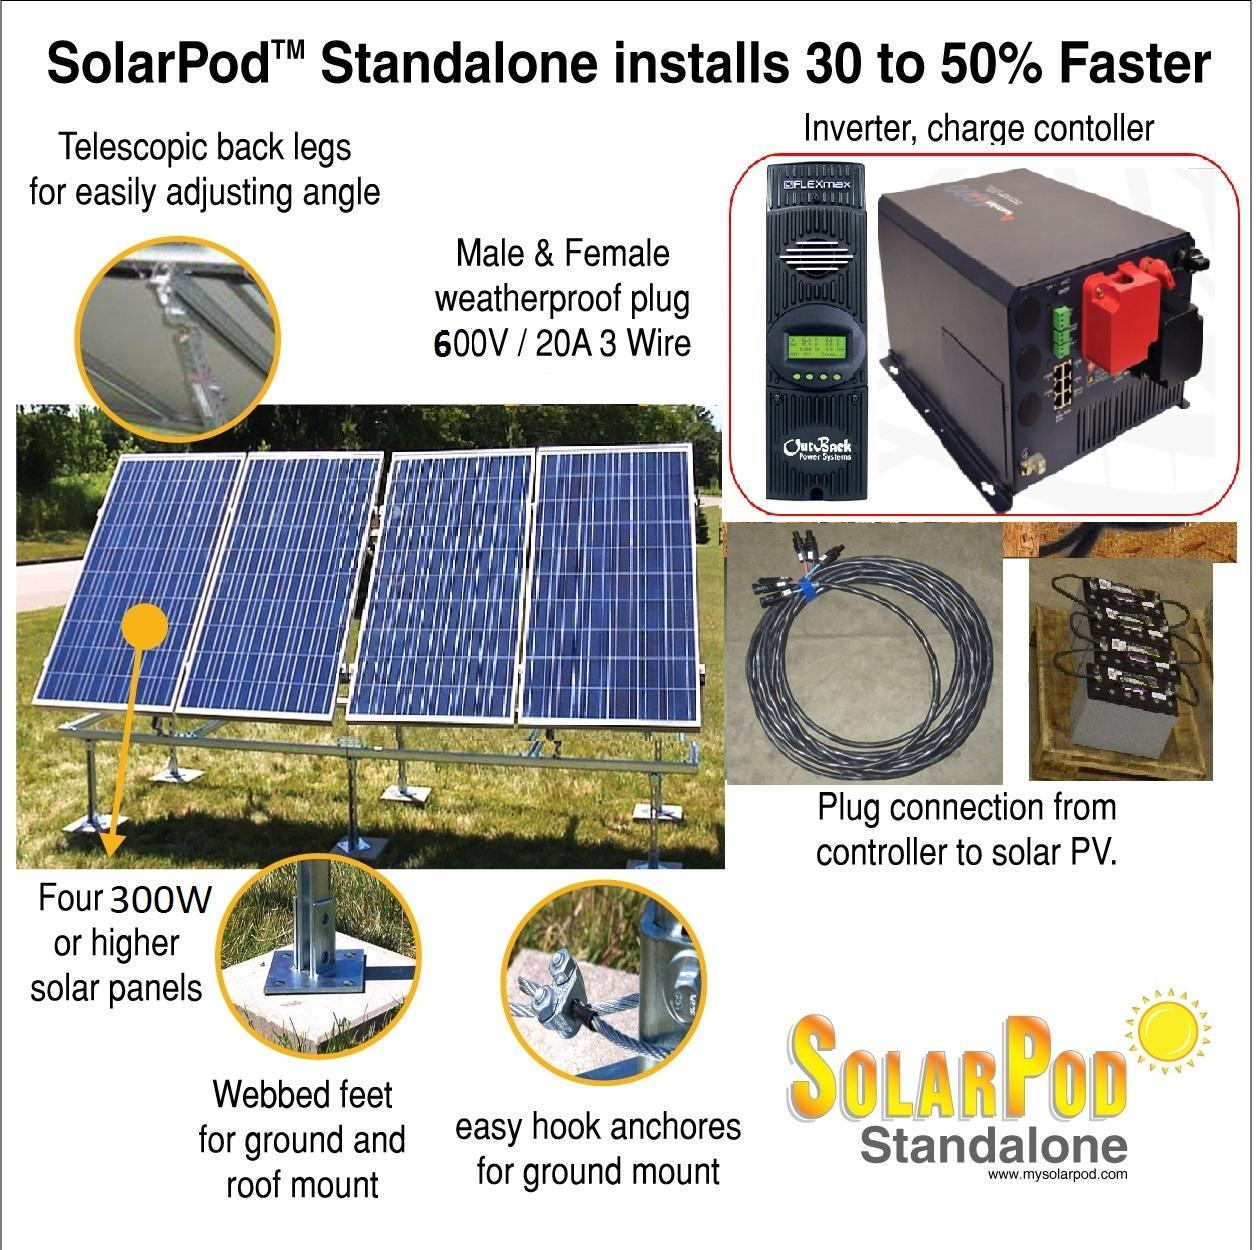 Model 1004 Solarpod Standalone 12 Kw Solar Pv System Wiring Panels To Grid Tie Inverter 2kw Charger